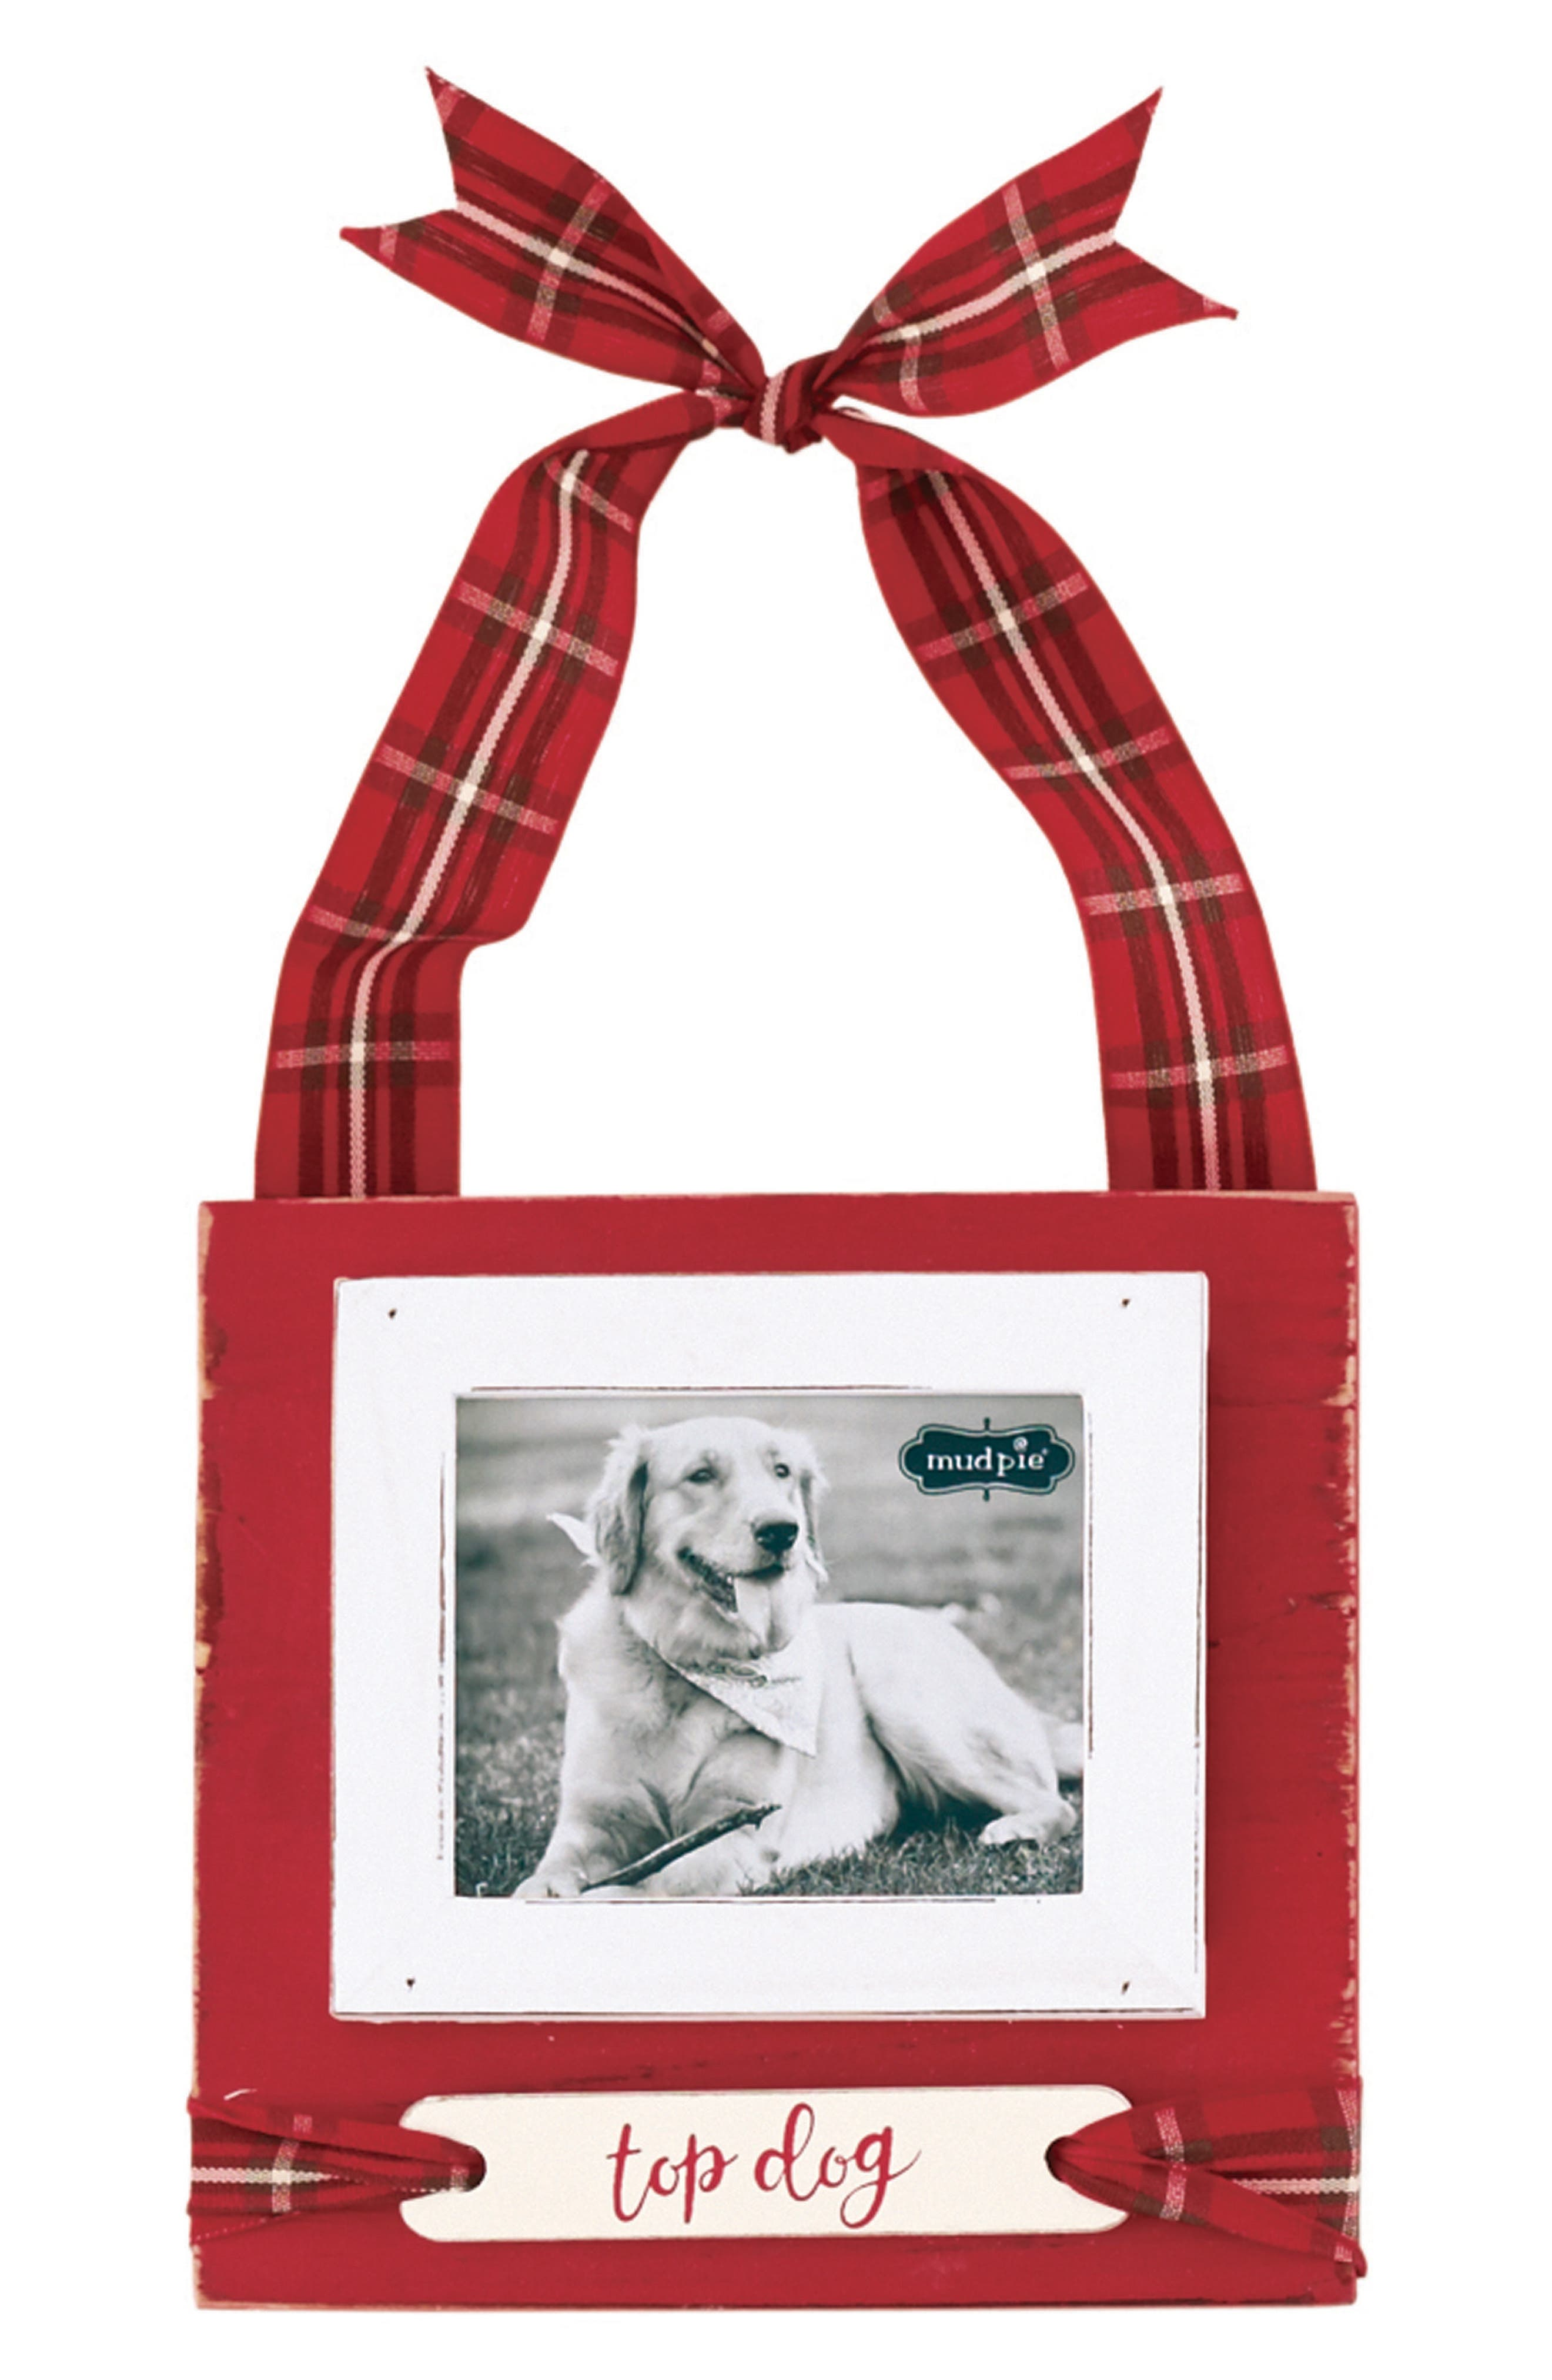 Main Image - Mud Pie Top Dog Frame Ornament